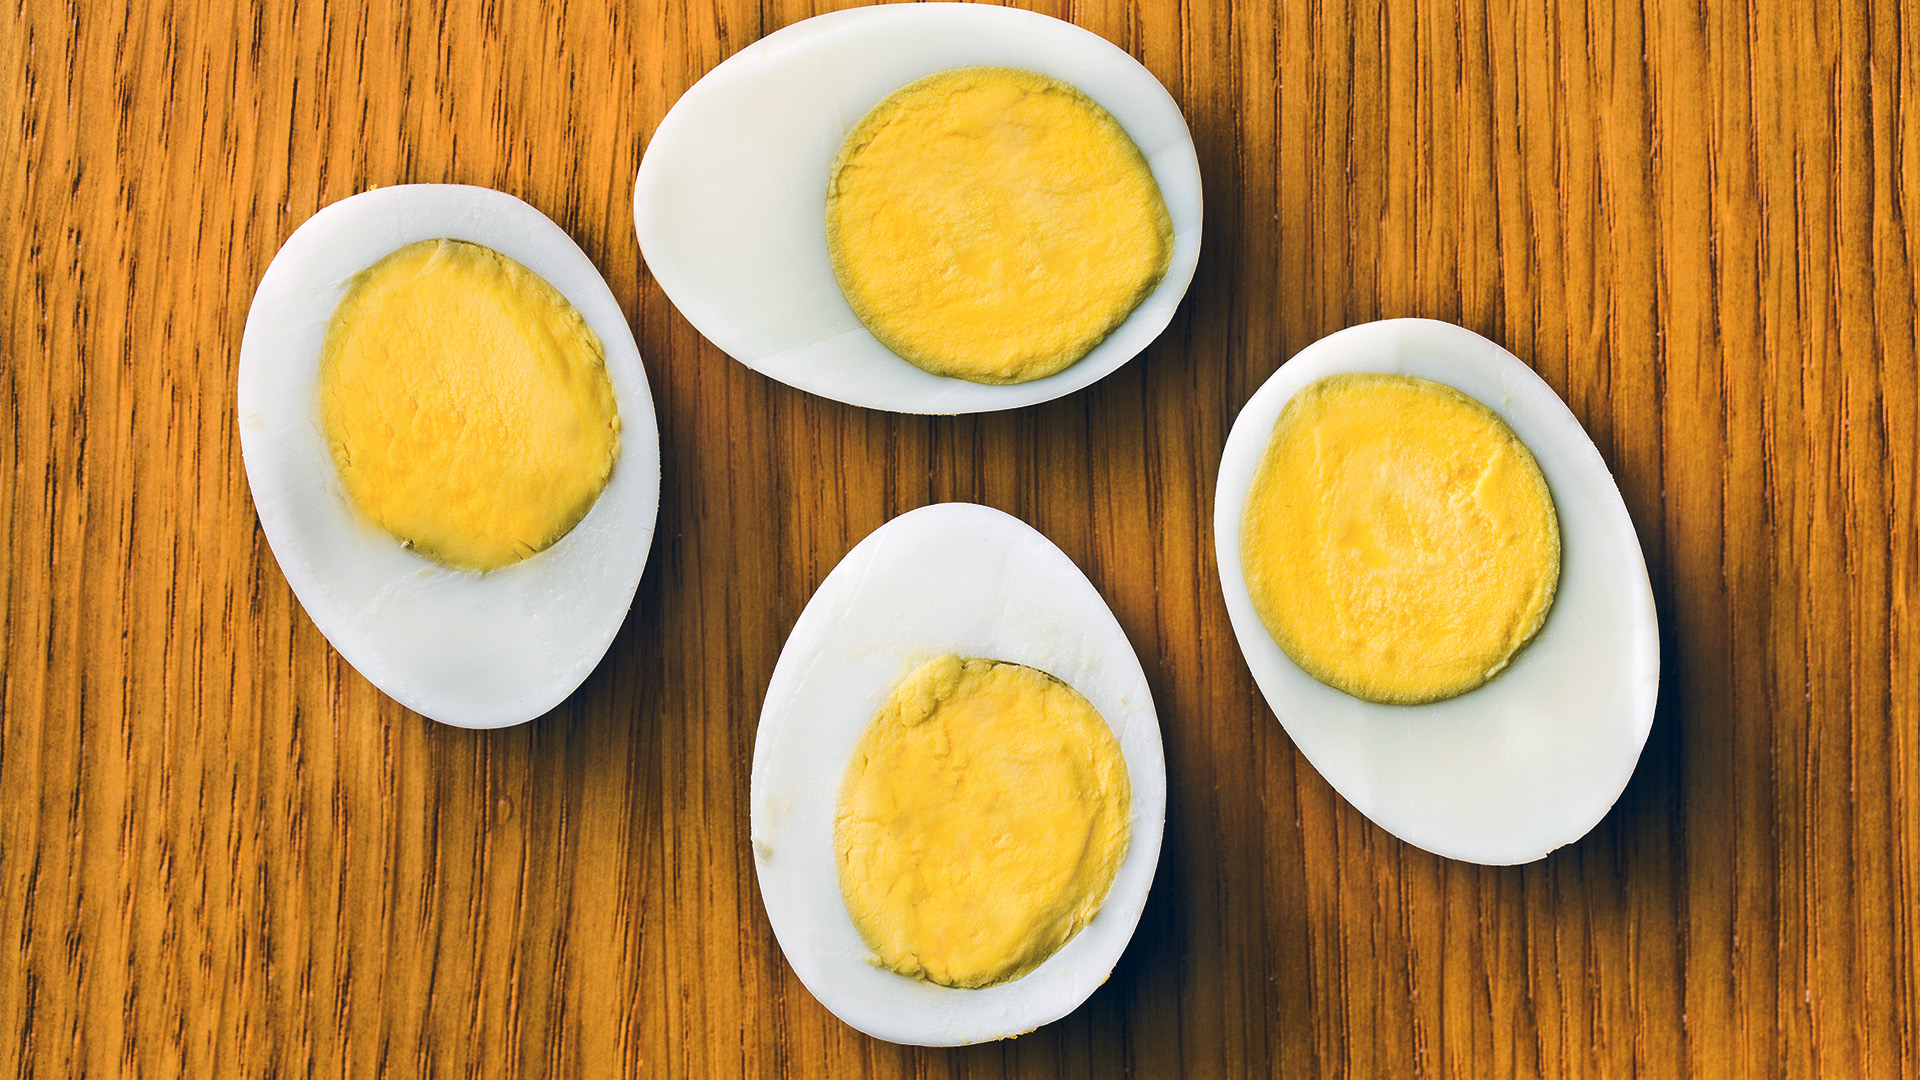 Top 10 Healthiest Snacks You Can Eat: Boiled Eggs